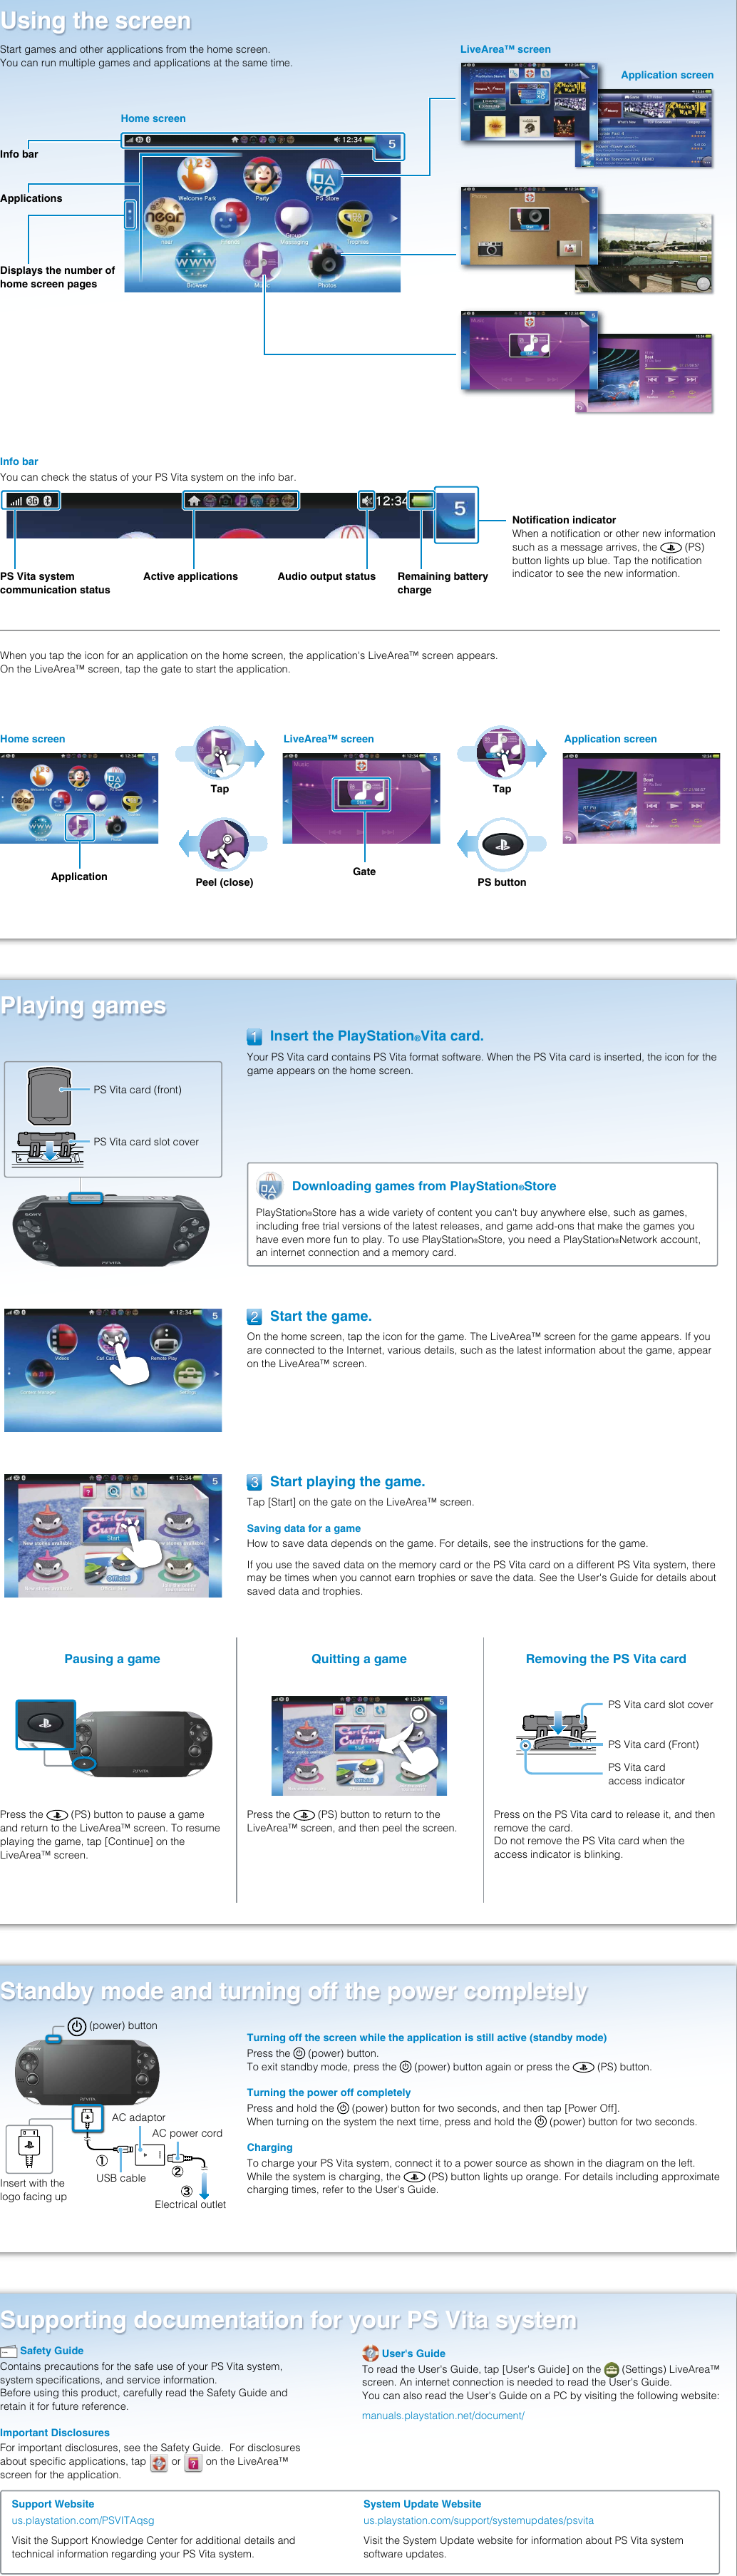 Sony Playstation Vita Pch 1001 Quick Start Manual / 1101